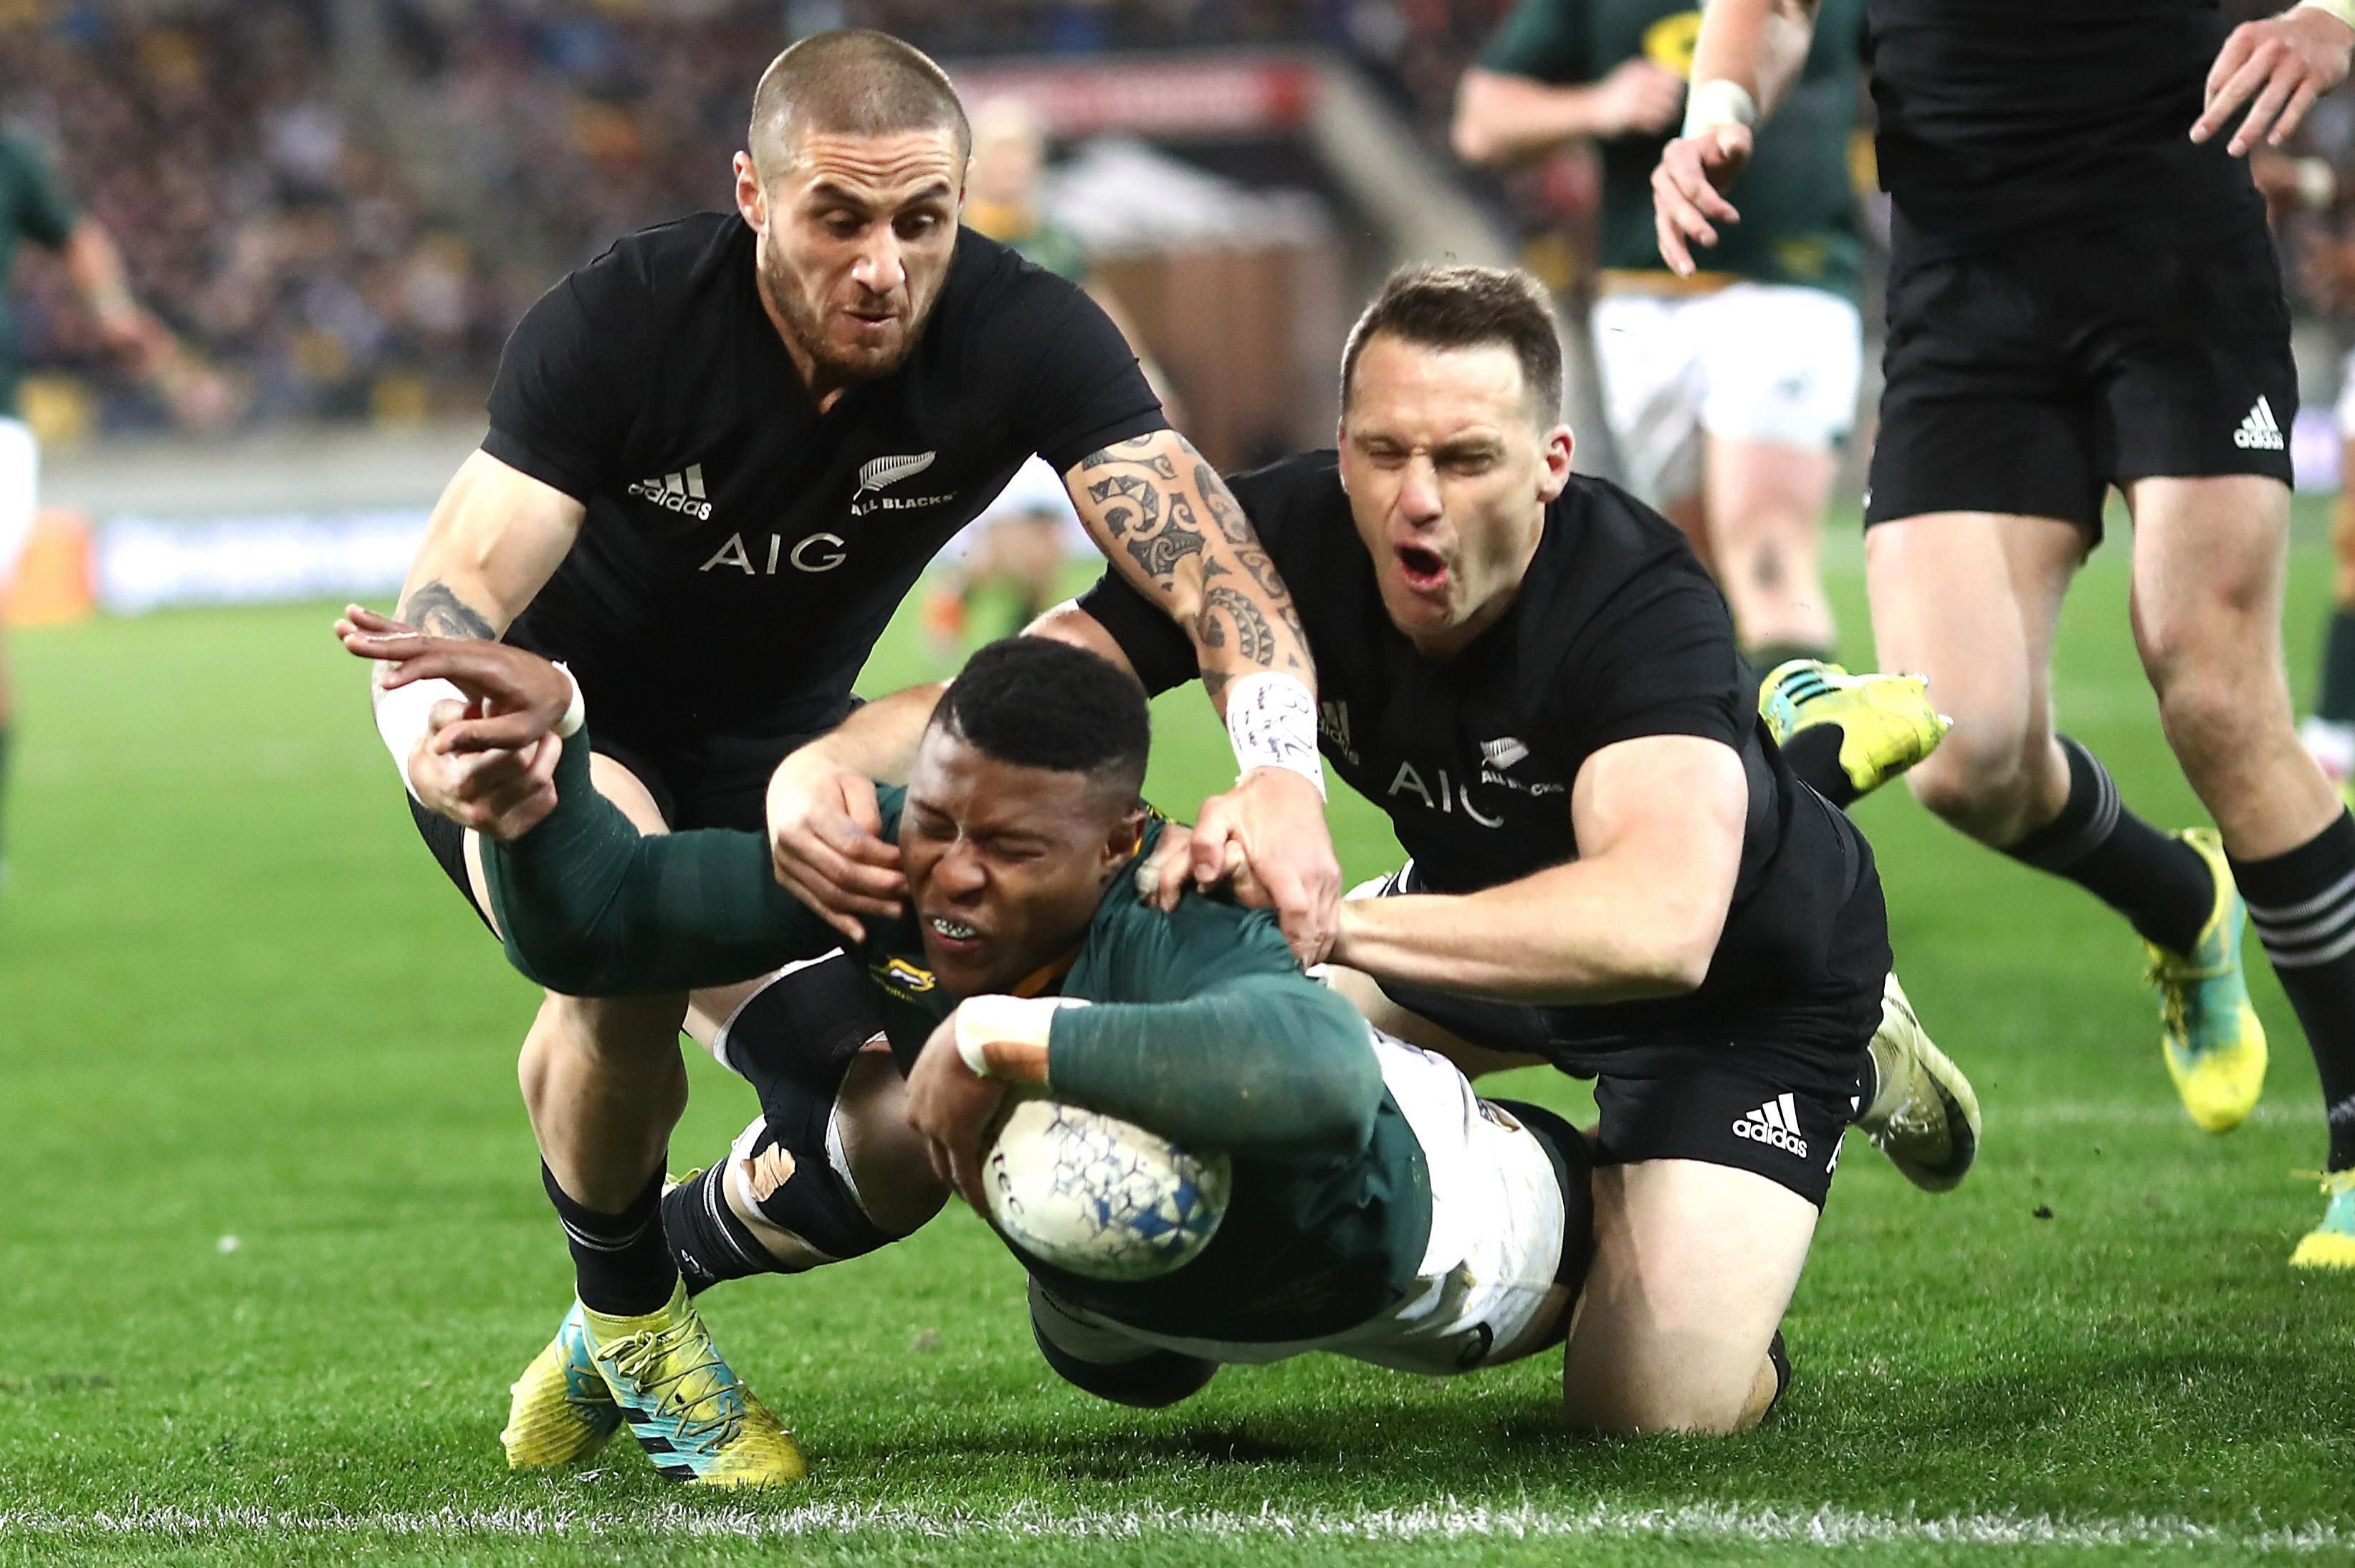 South Africa are on cloud nine after a stunning victory in New Zealand